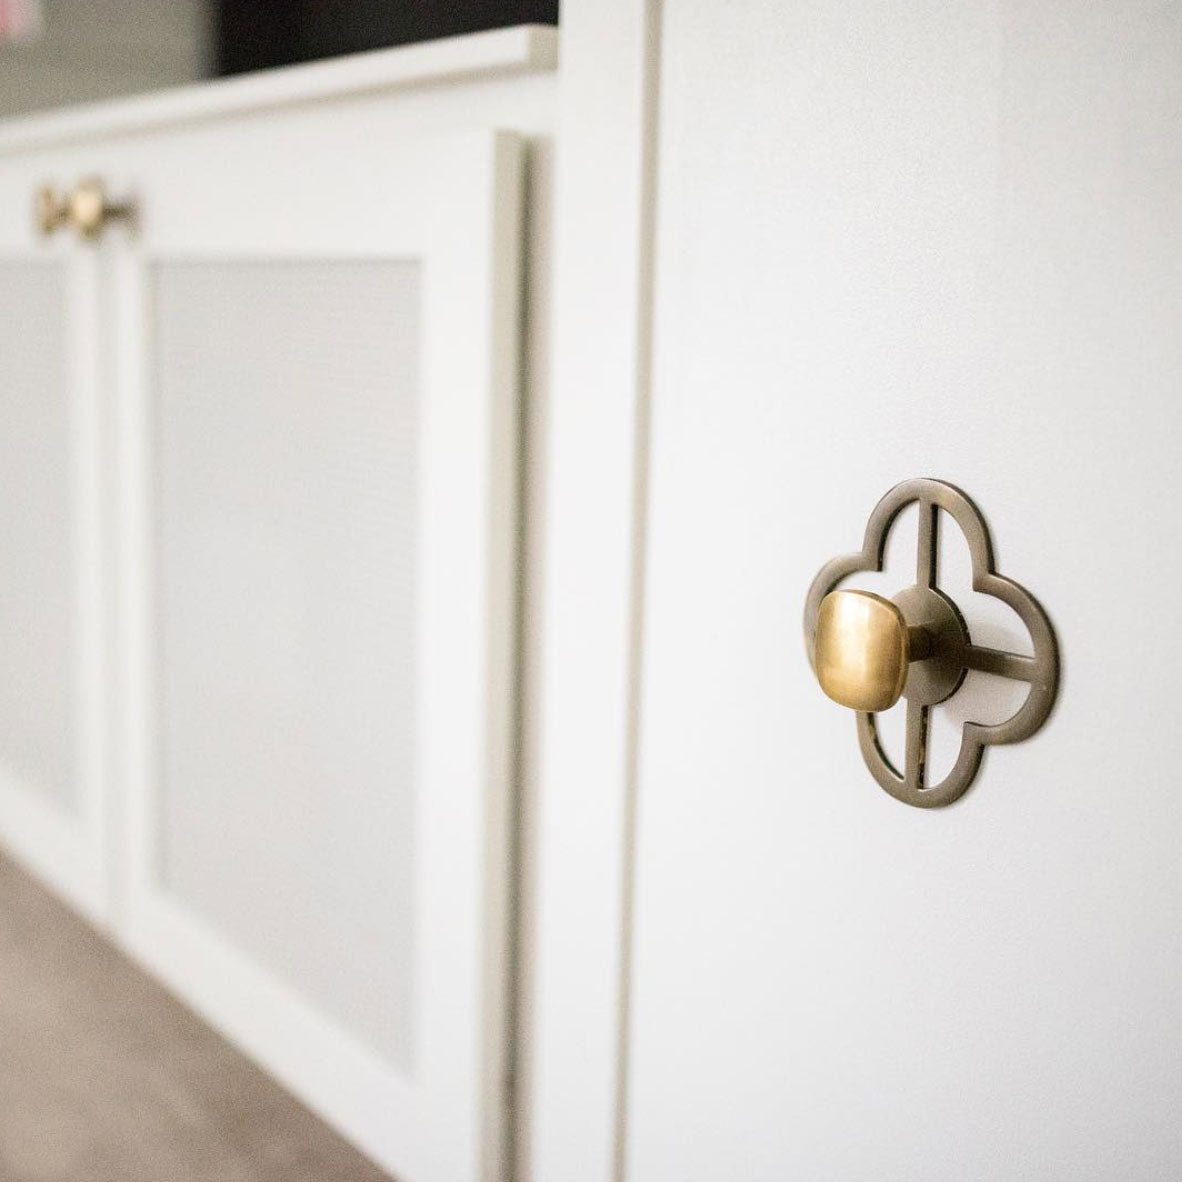 Cabinets with Jones Backplate in Antique Brass and Benson Knob in Antique Brass